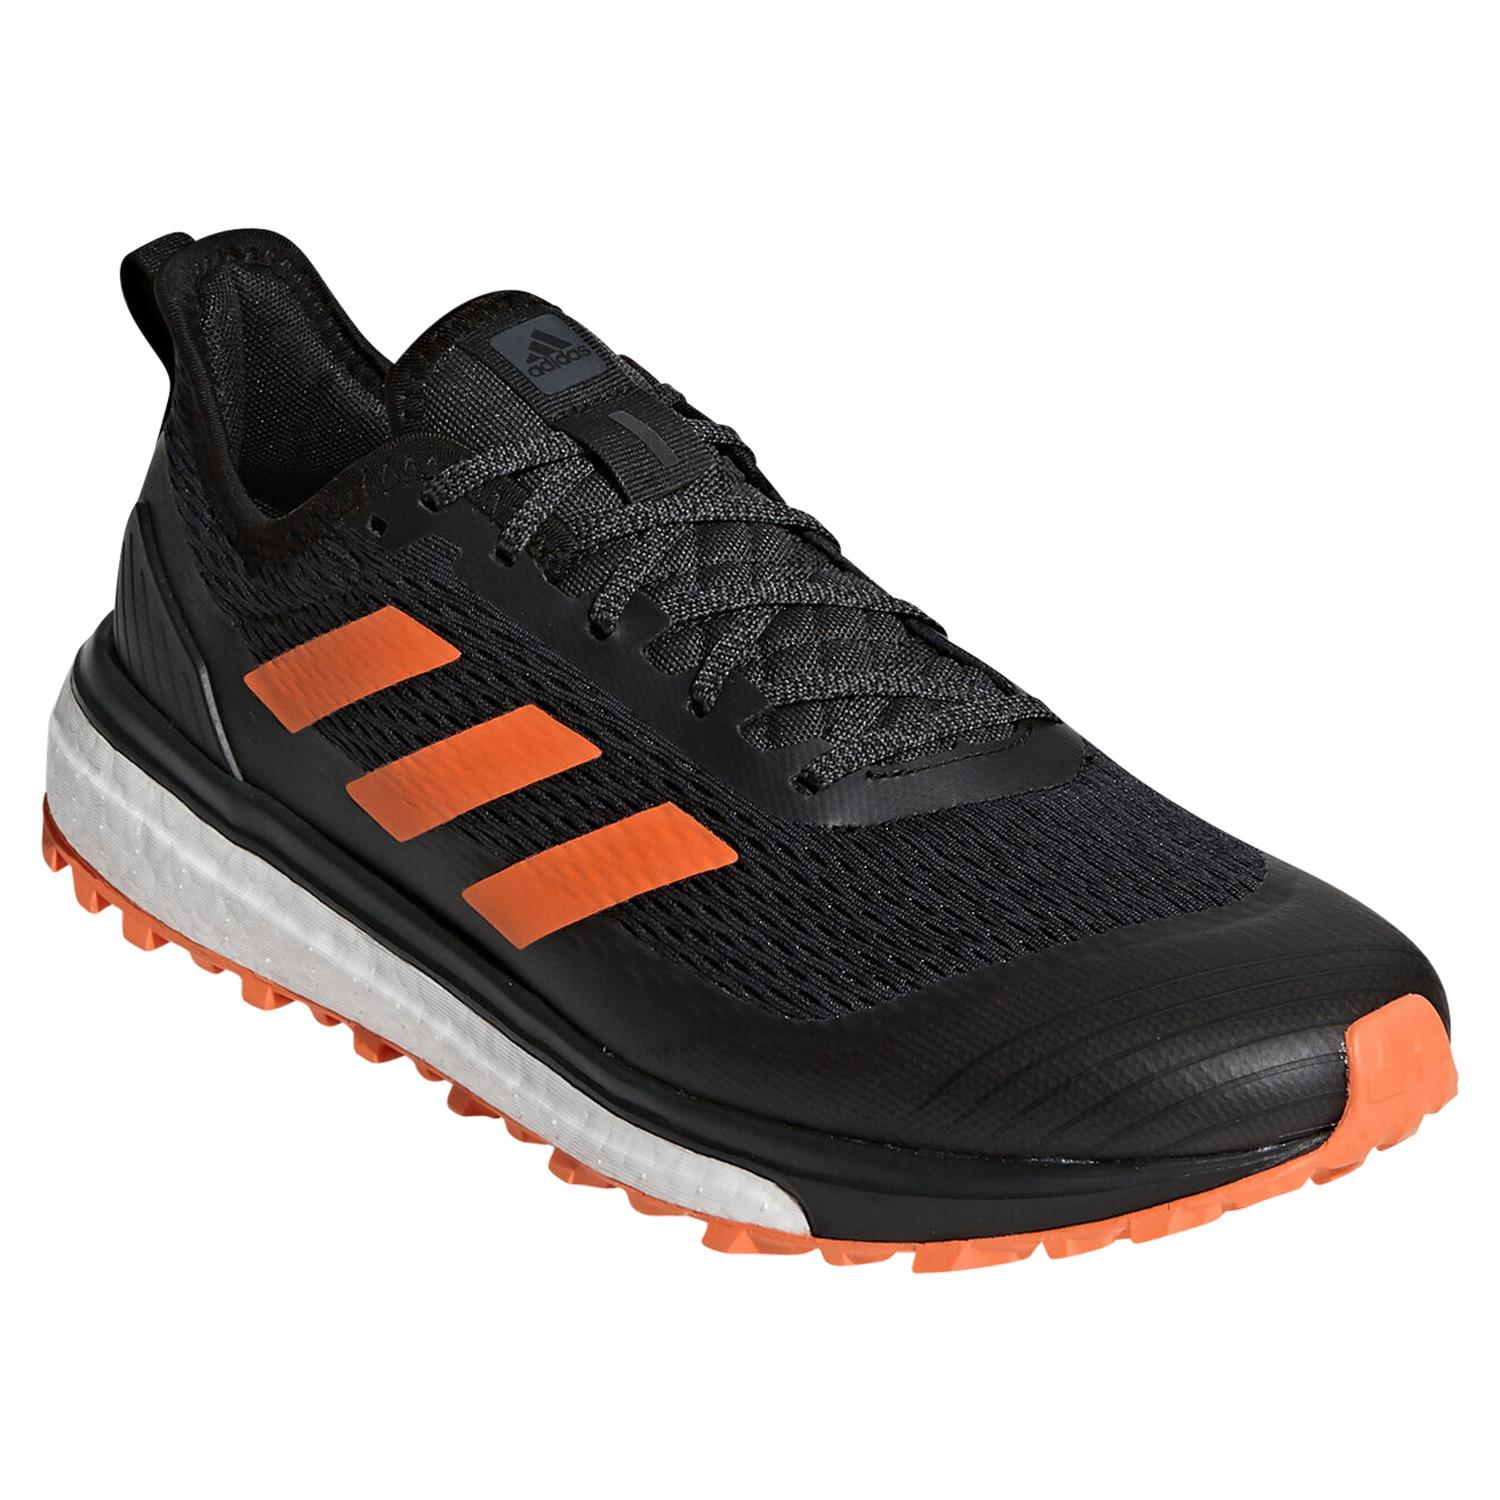 adidas RESPONSE TRAIL SHOES BLACK ORANGE RUNNING TRAINERS SNEAKERS ...